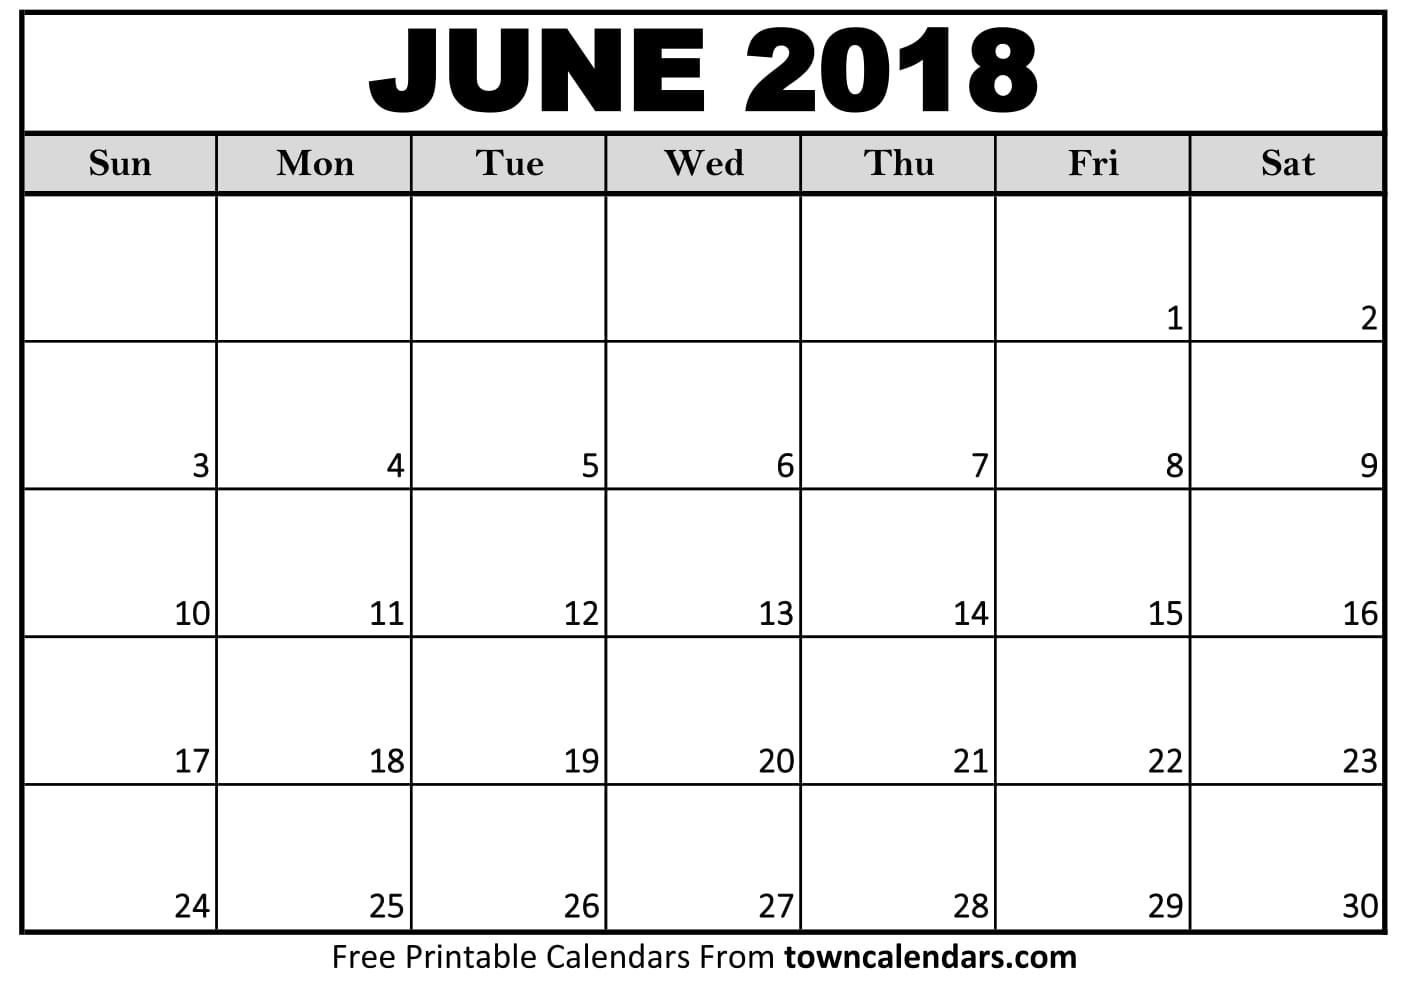 Calendar June Template : Free june calendar printable template source